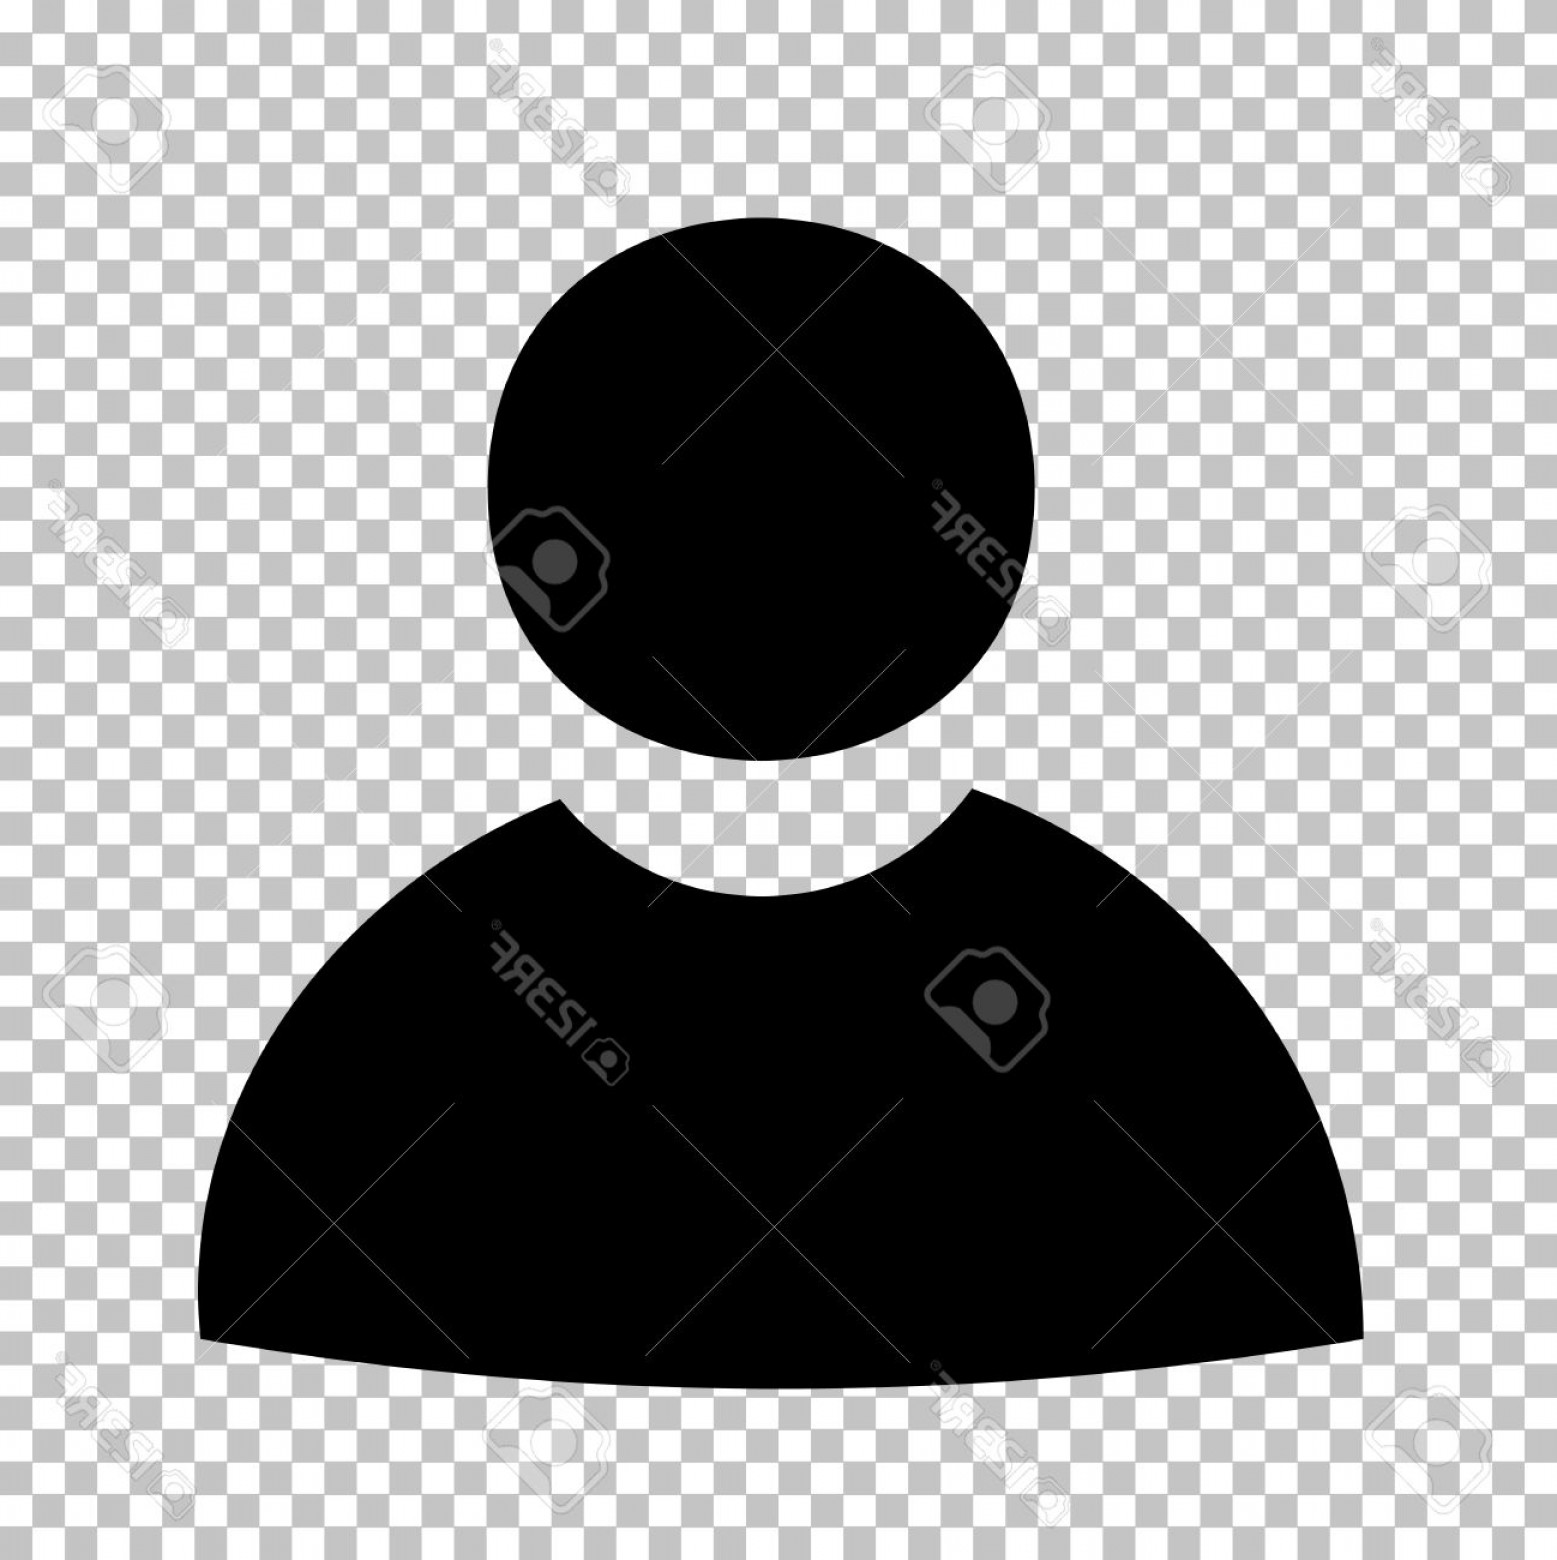 User Icon Vector Free: Photostock Vector User Sign Flat Style Icon On Transparent Background